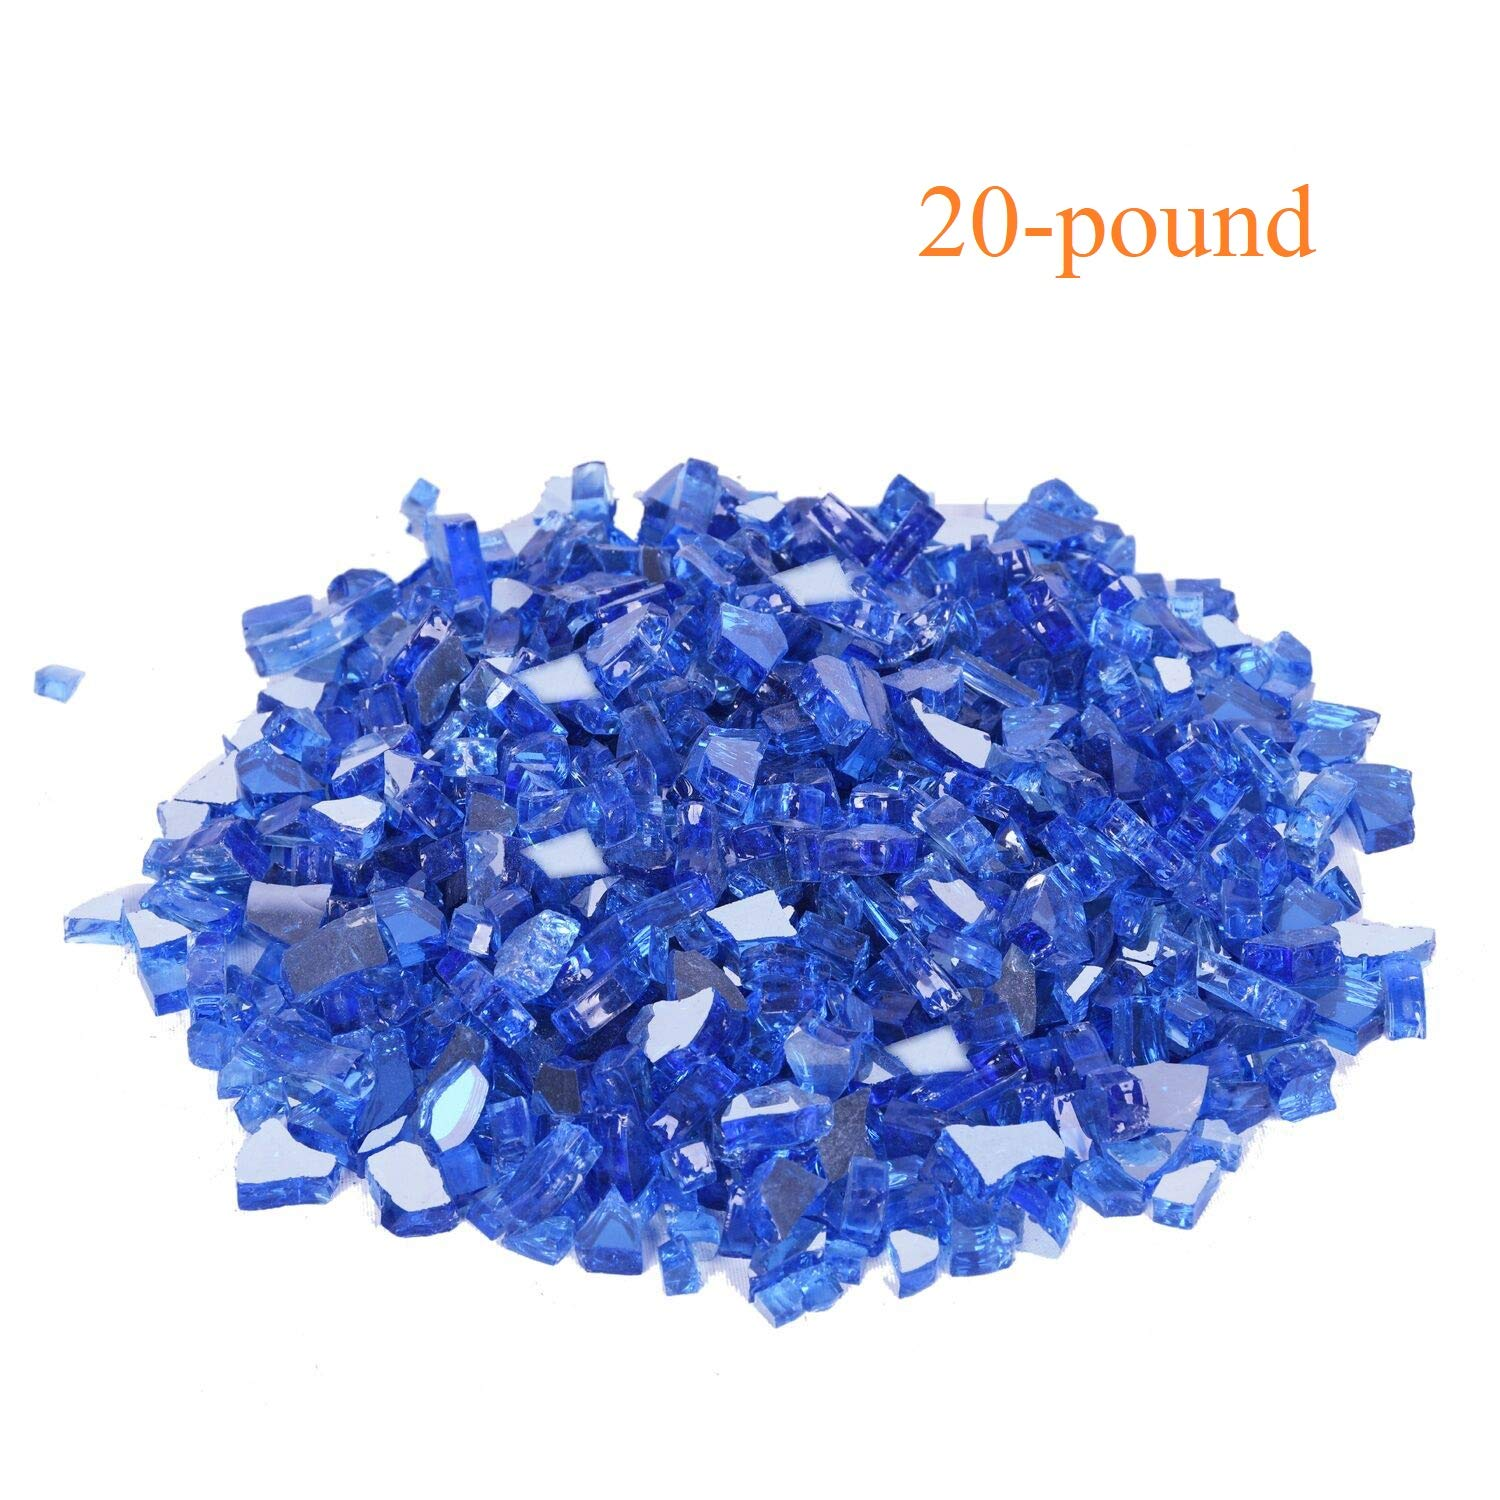 GasSaf 20lb Fire Glass-1/2 Inch Blue Reflective Tempered Fireglass for Fireplace, Fire Pit and Others(20 Pound)(Blue Reflective)